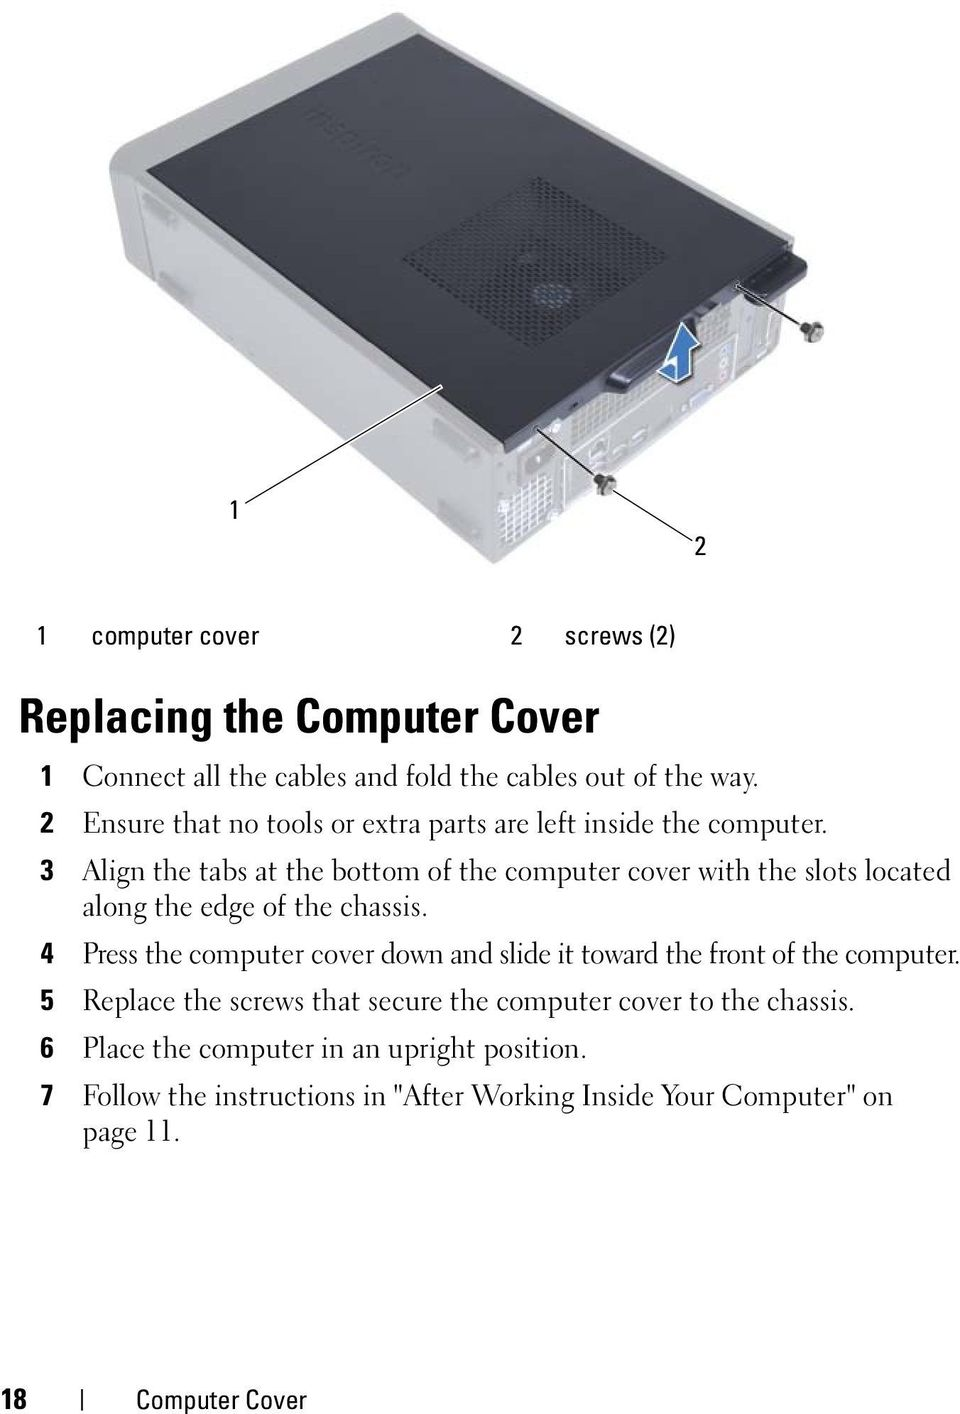 3 Align the tabs at the bottom of the computer cover with the slots located along the edge of the chassis.